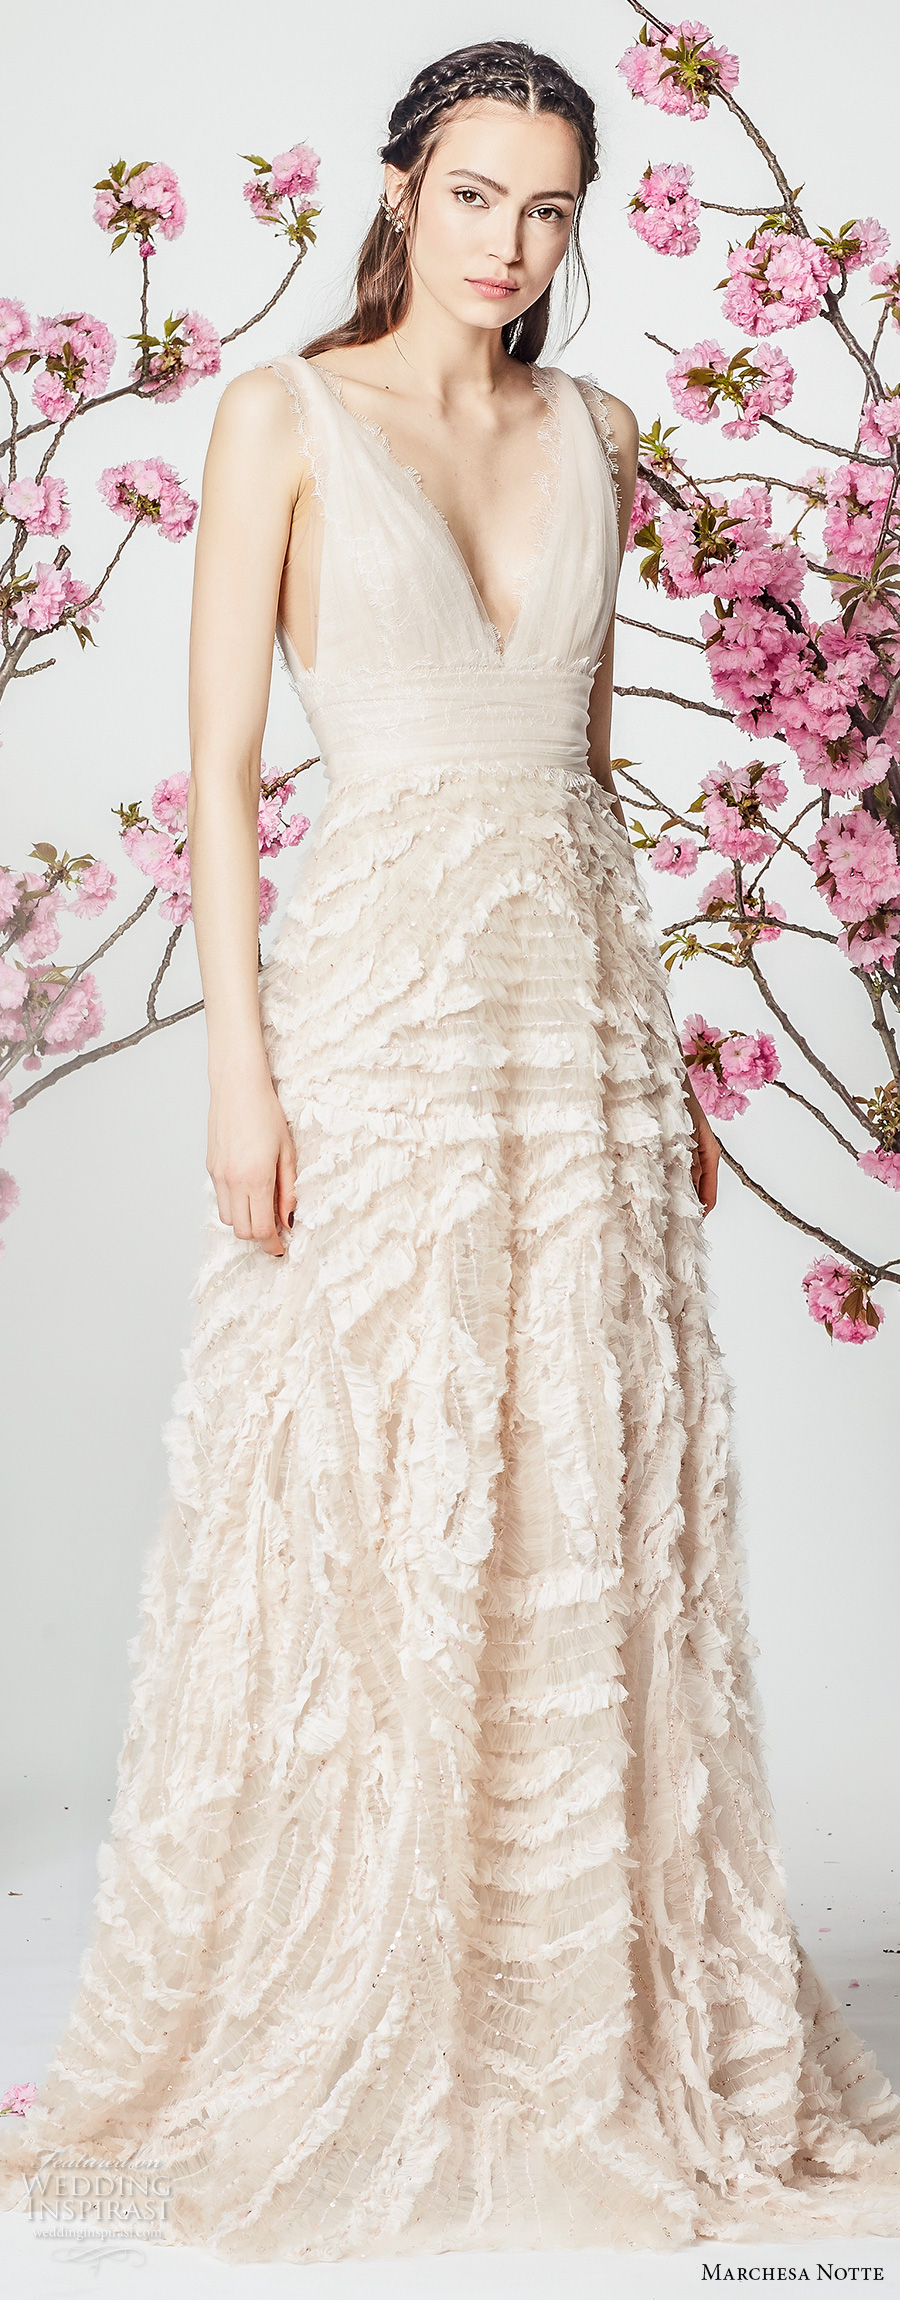 marchesa notte spring 2018 bridal sleeveless strap deep v neck ruched bodice heavily embellished skirt romantic blush color a line wedding dress sweep train (6) mv